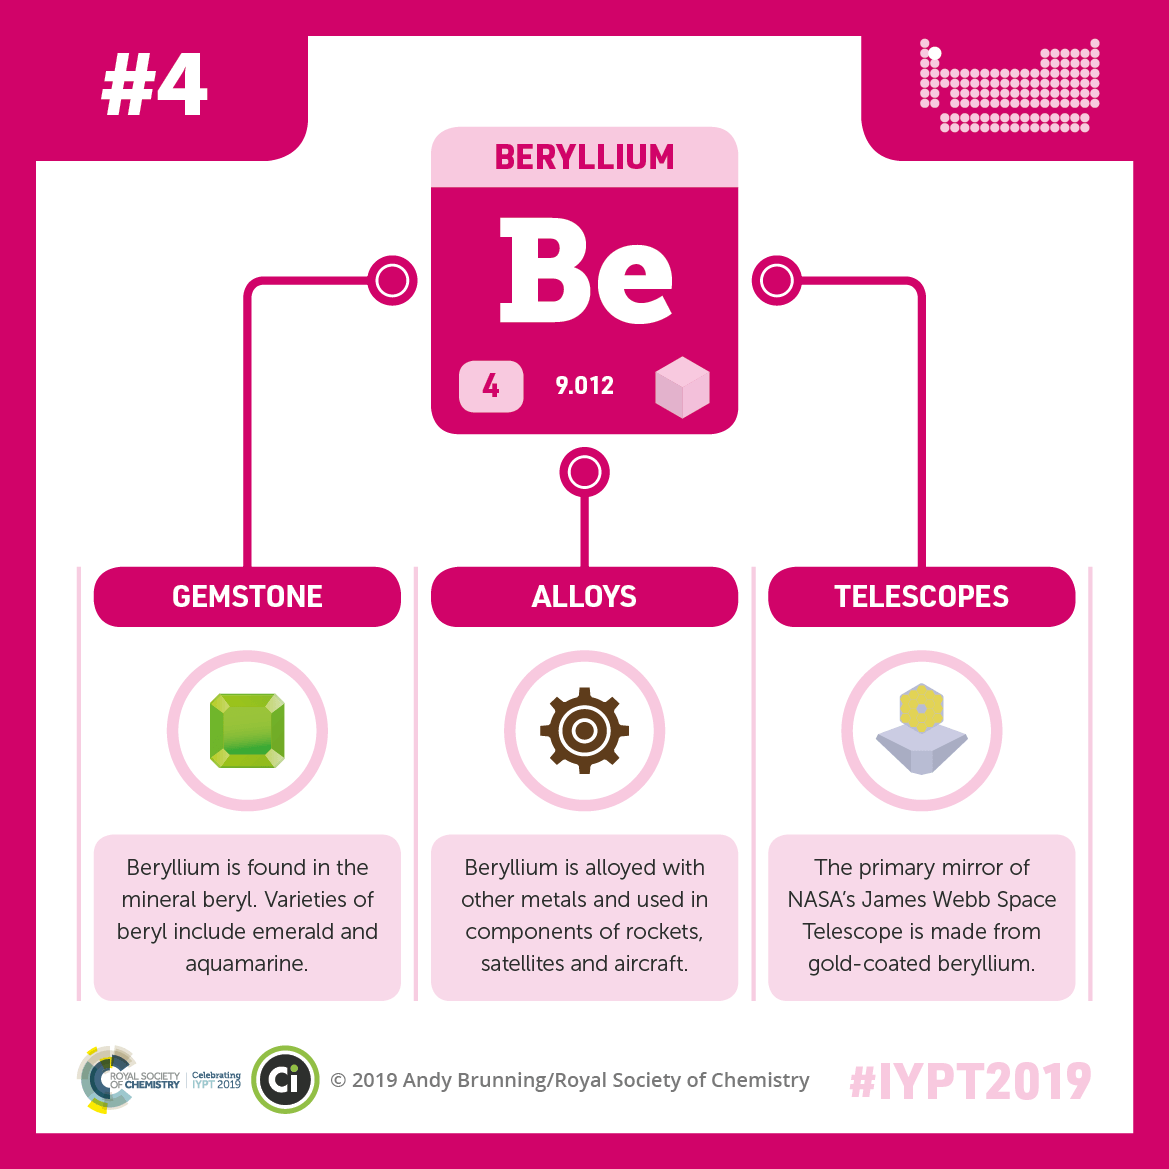 IYPT 2019 Elements 004: Beryllium, emeralds, and NASA telescopes